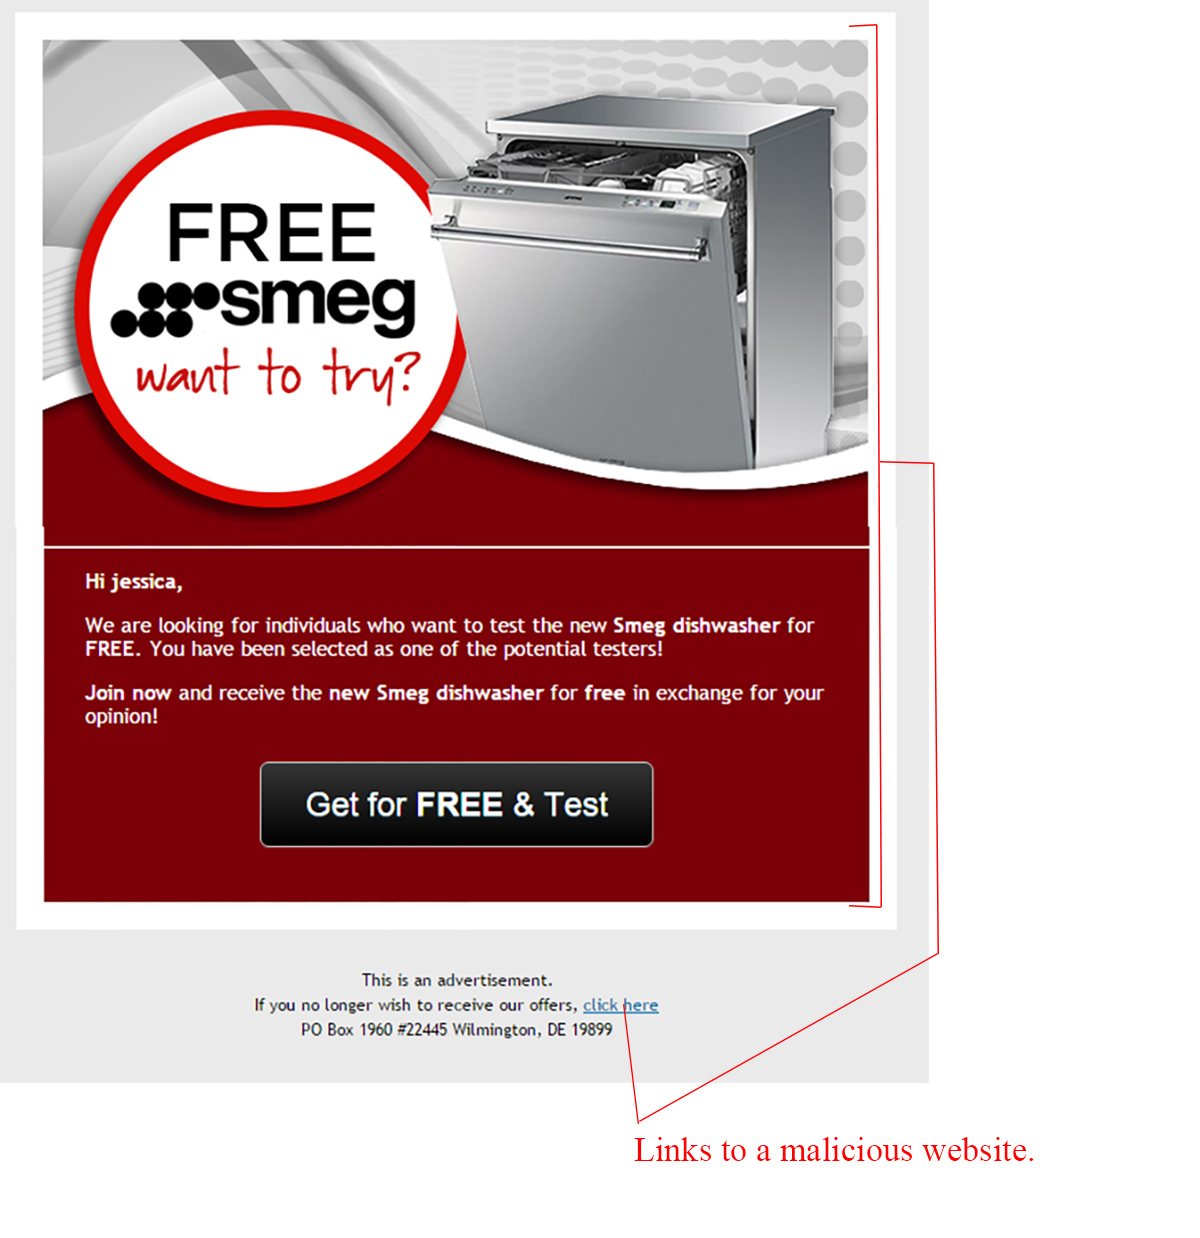 MailShark Free SMEG Dishwasher Test and Keep Scam